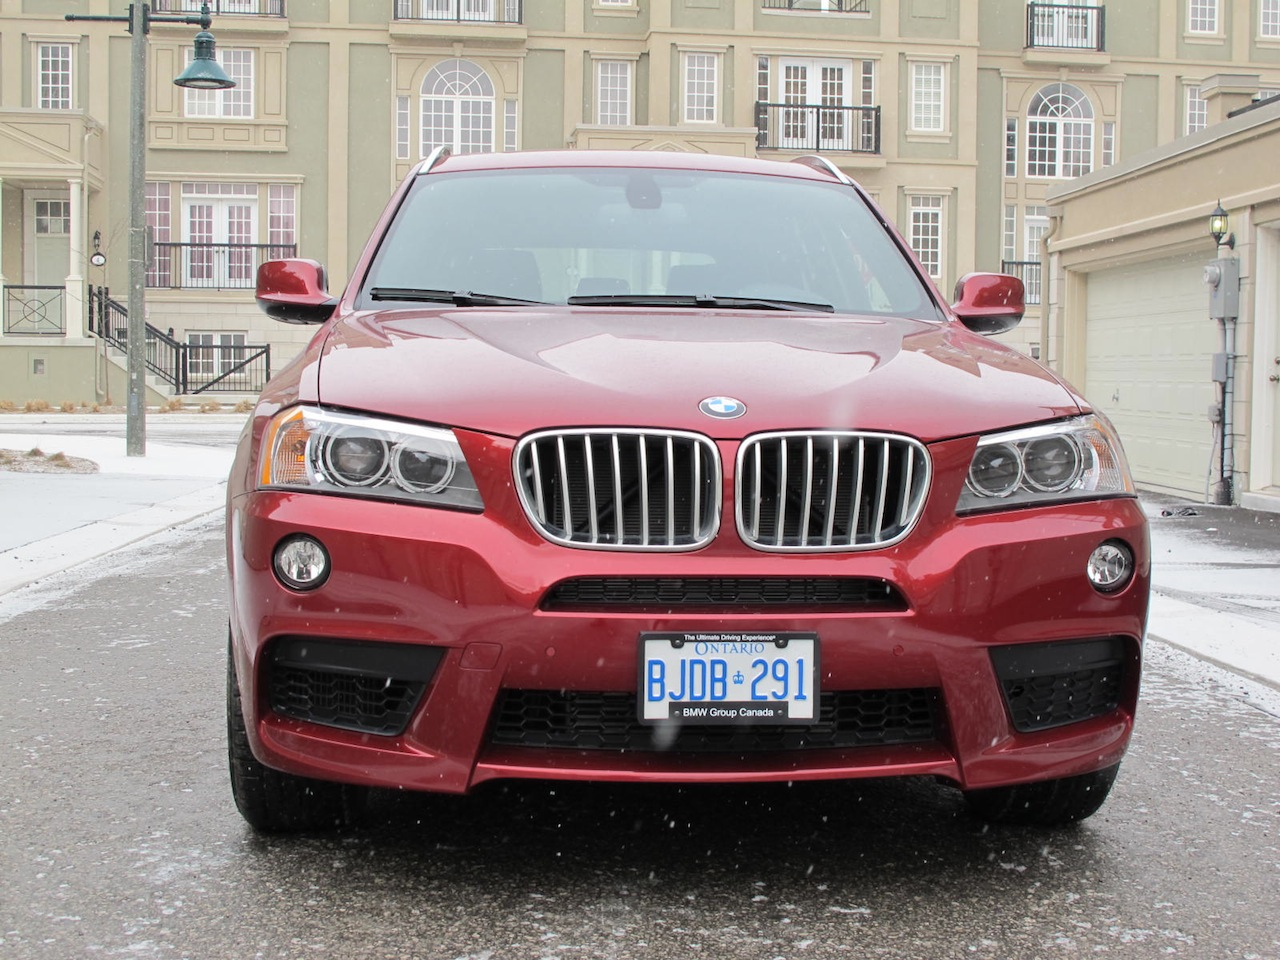 2013 BMW X3 xDrive35i  Cars Photos Test Drives and Reviews